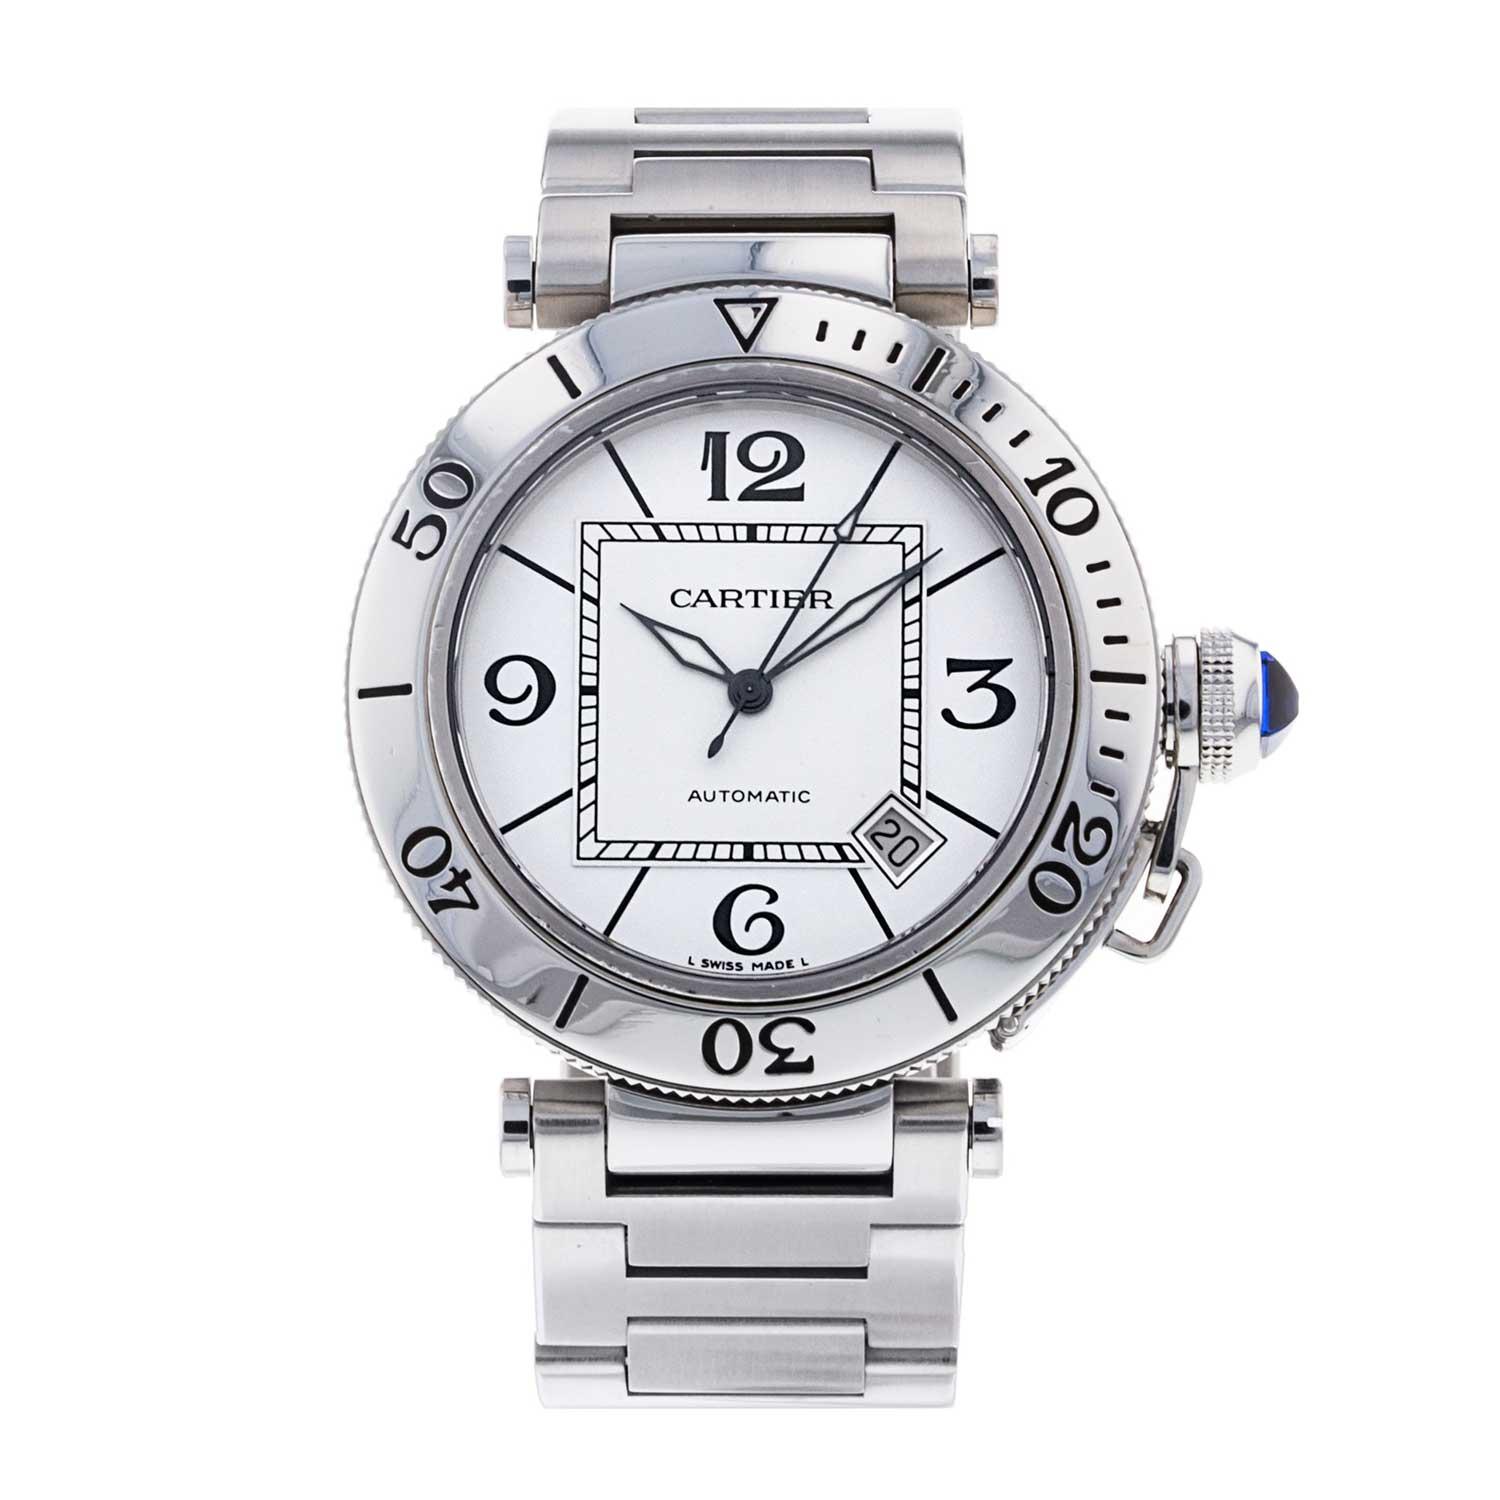 This Pasha Seatimer from 2007 is a self-winding automatic watch that features a 40mm stainless steel case surrounding a silver dial.